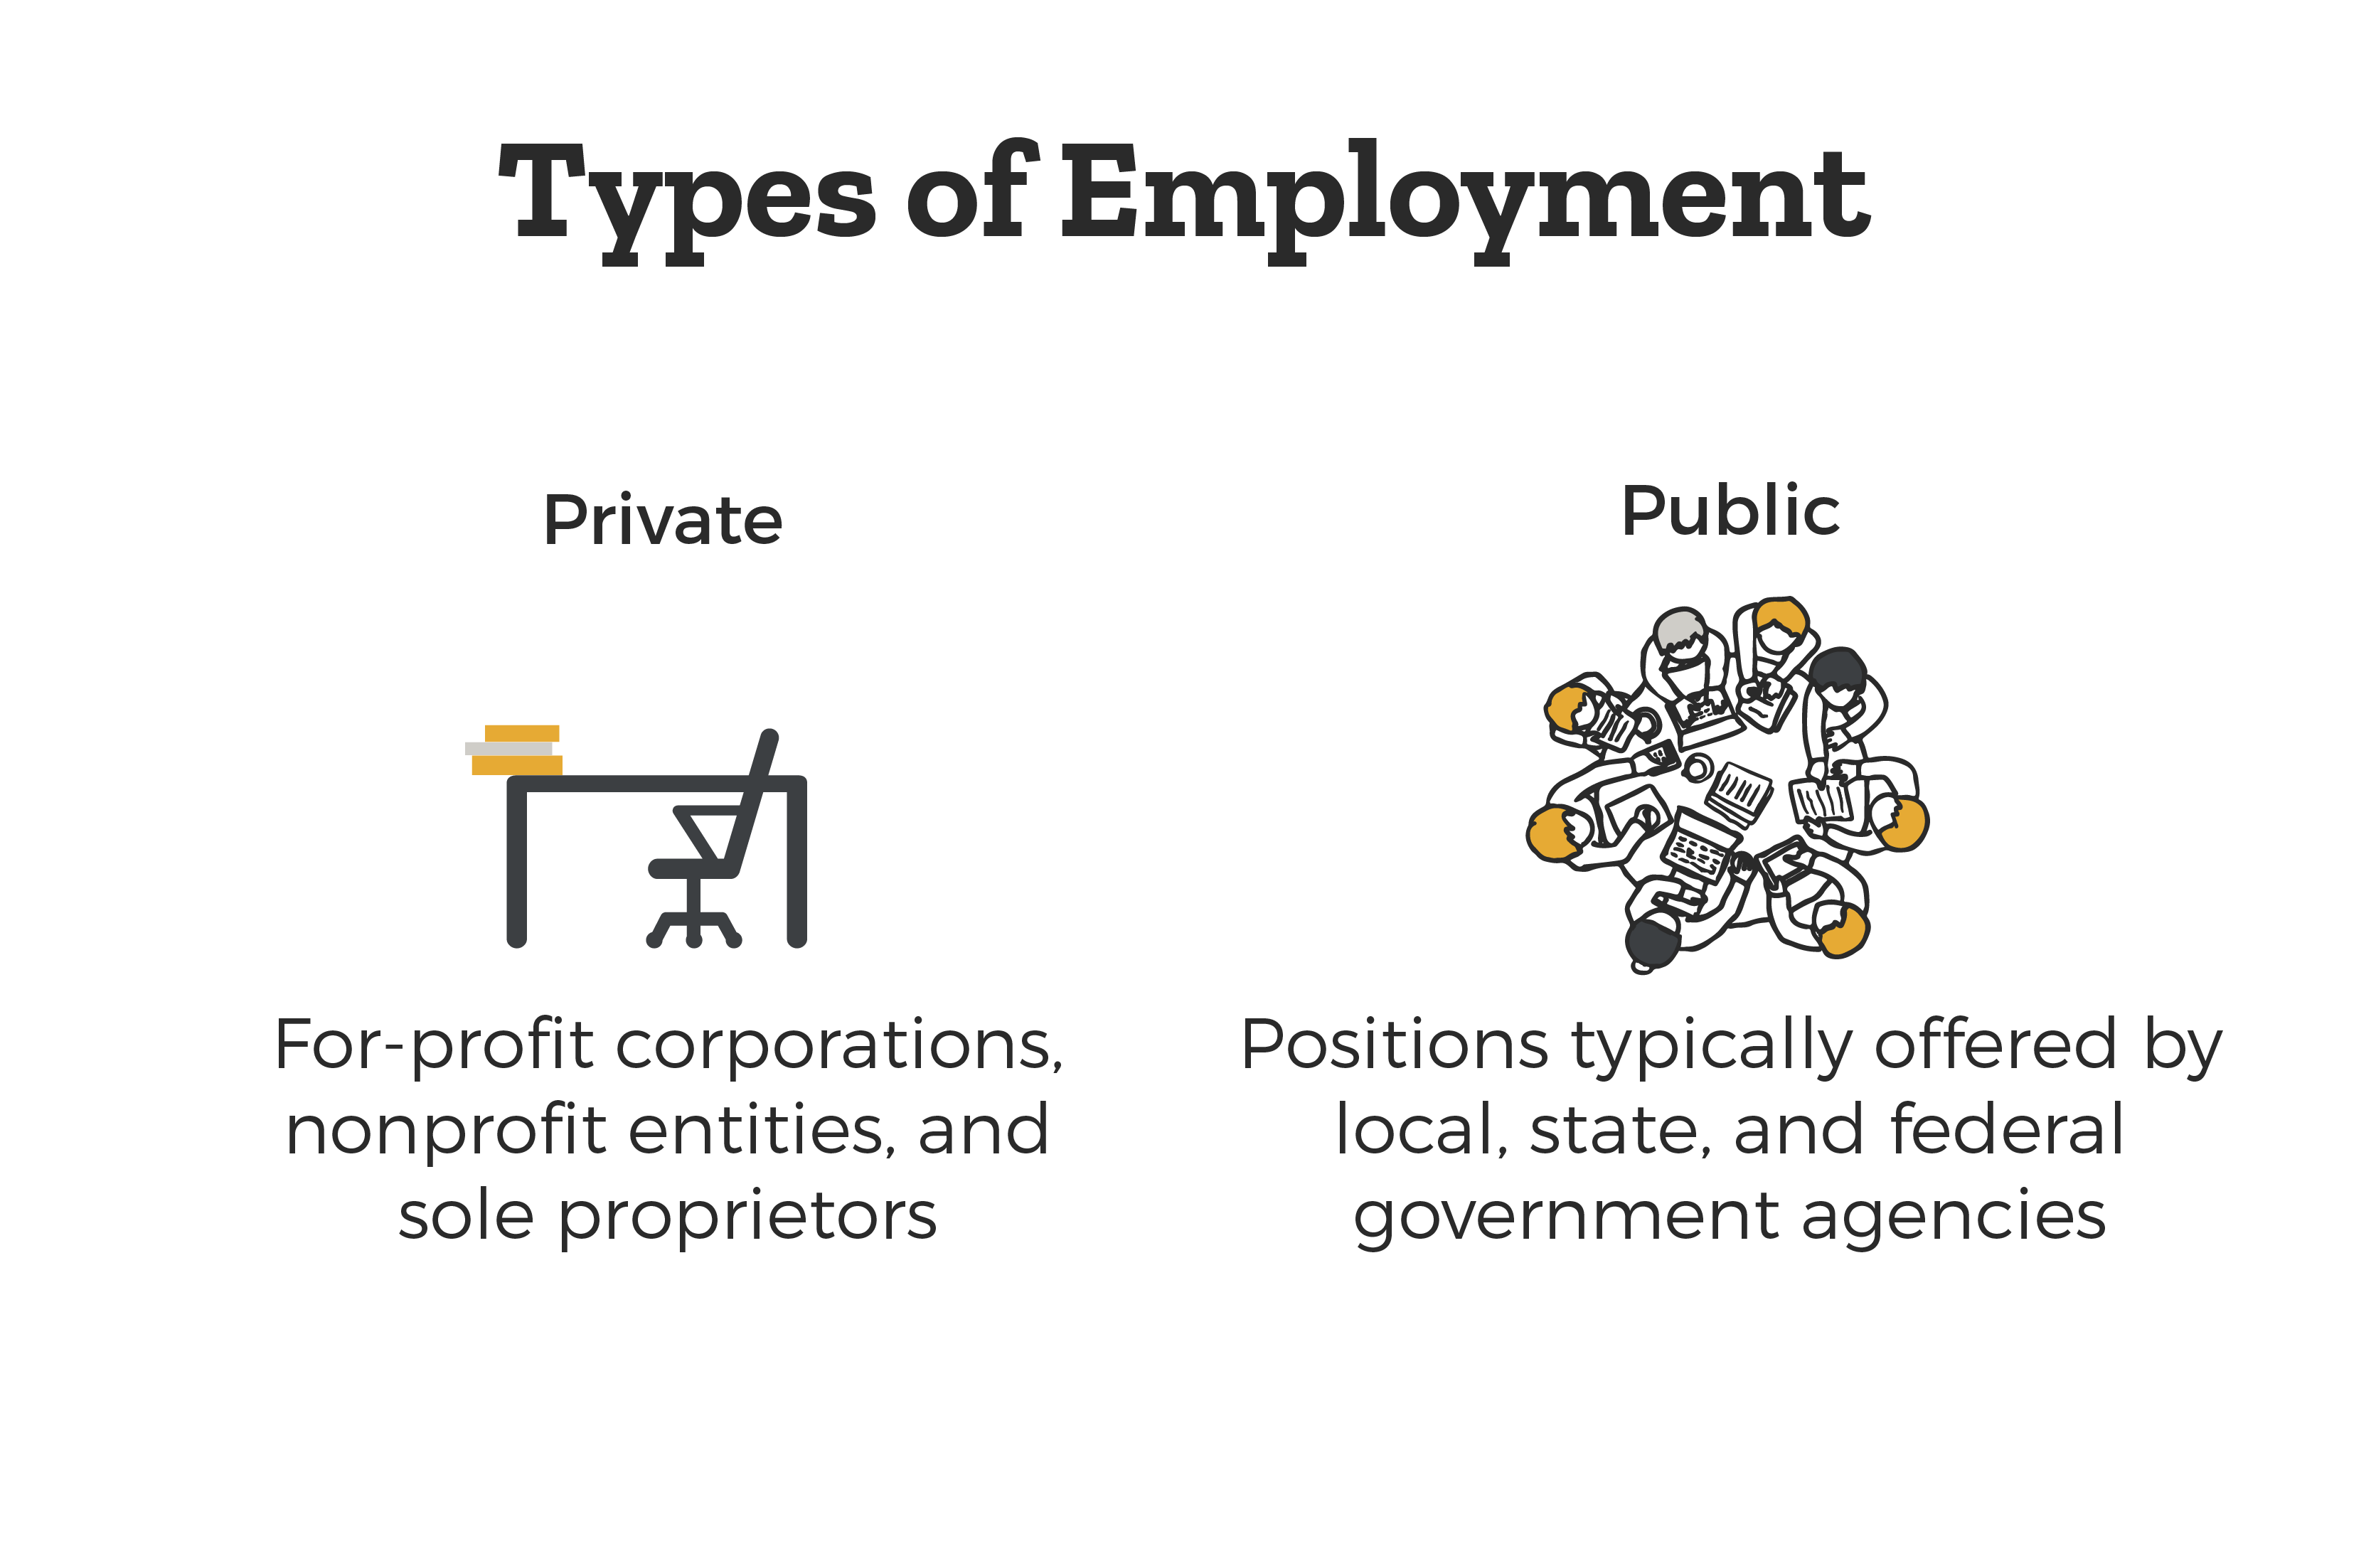 Two Types of Employment - Private Employment meaning for-profit corporations, non profit entities, and sole proprietors. And Public Employment meaning positions typically offered by local, state, and federal government agencies.